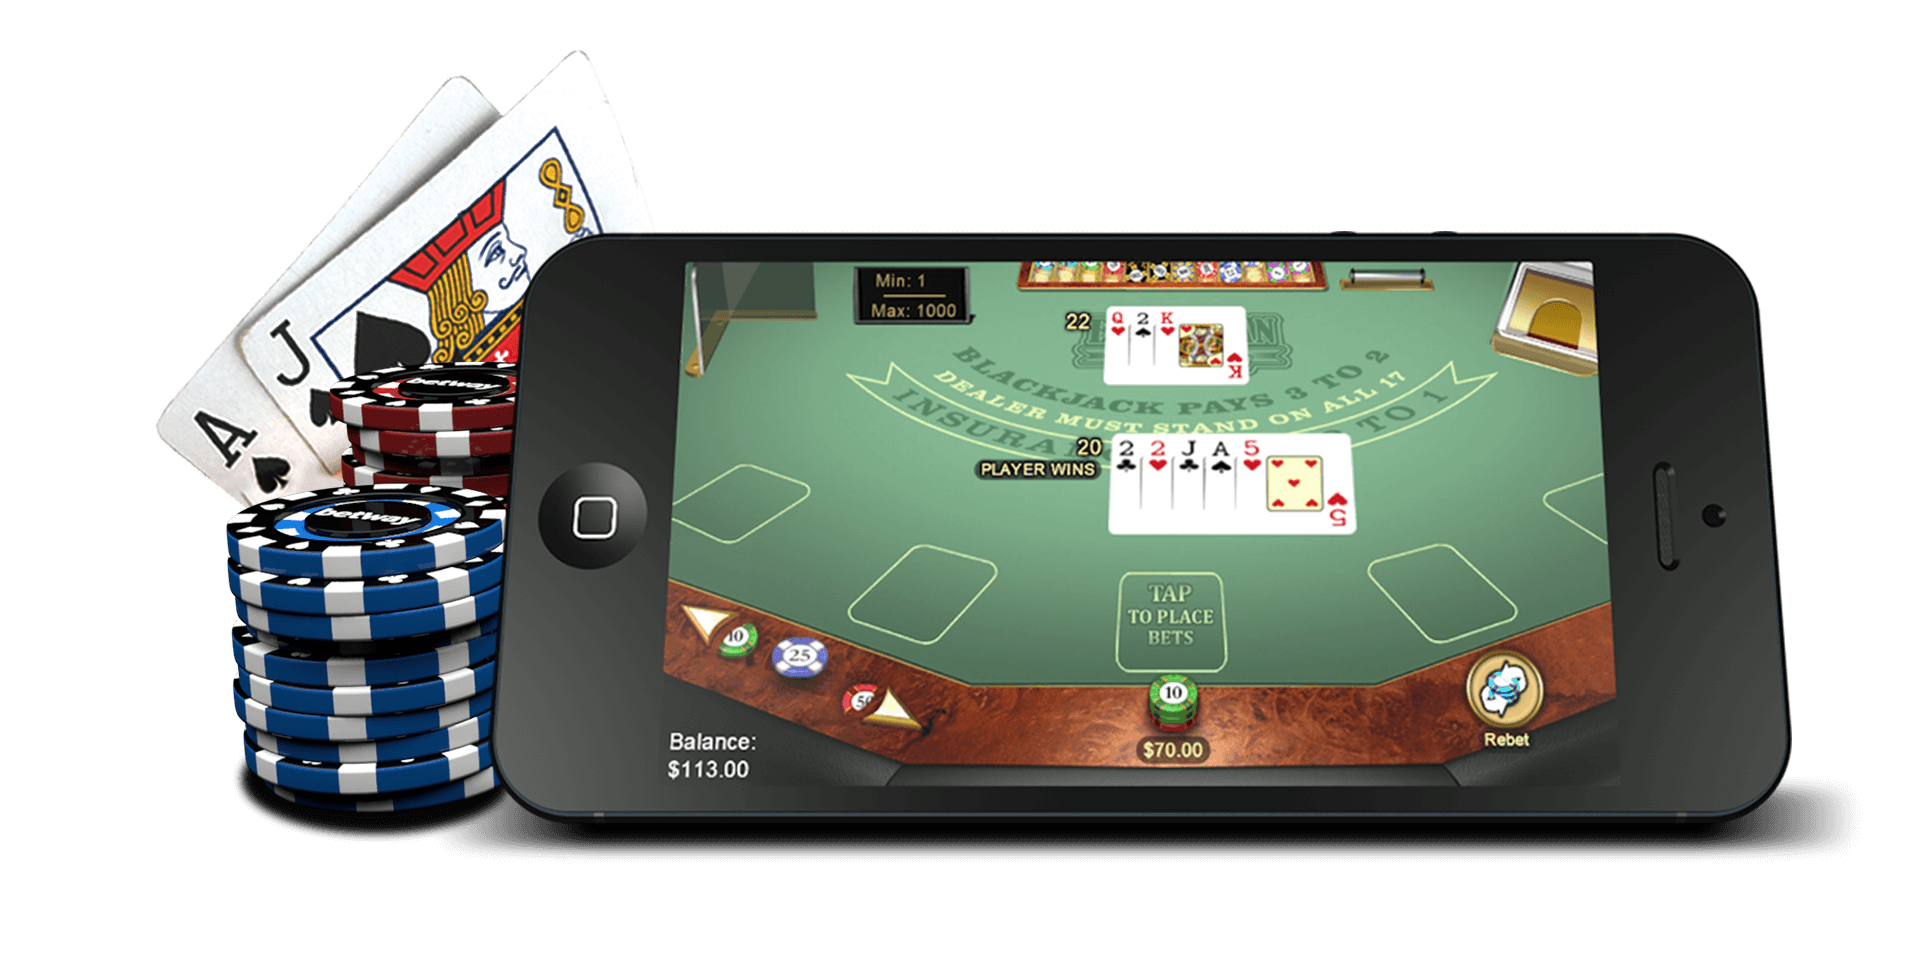 Where can i play blackjack online for real money